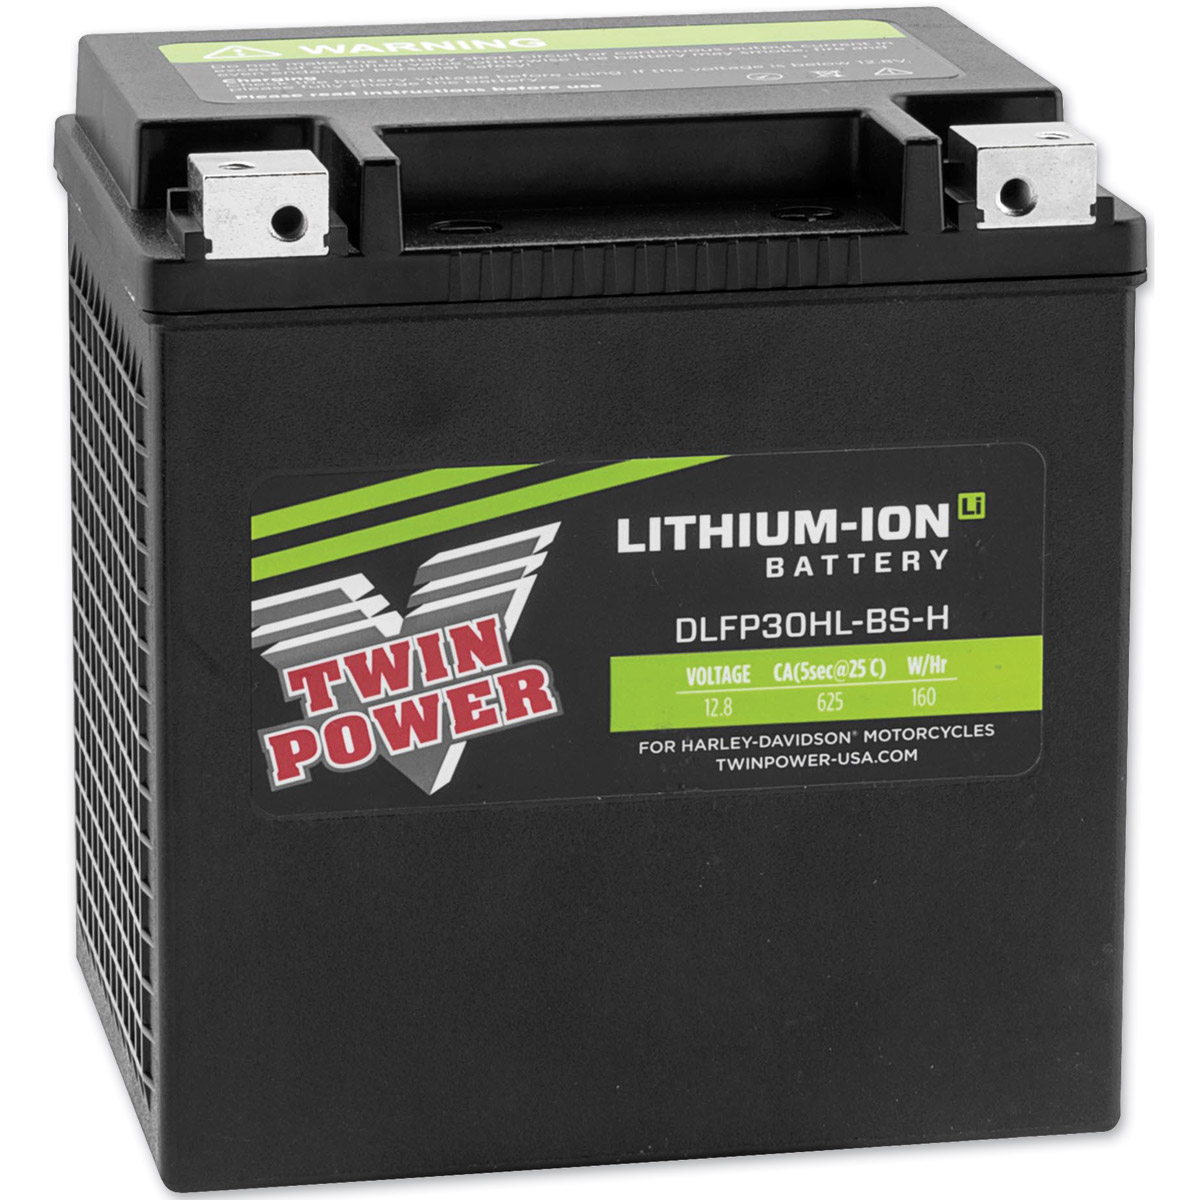 Motorcycle Batteries Battery Jp 6v Lead Acid Charger Model Shop Leeds Twin Power Lithium Ion